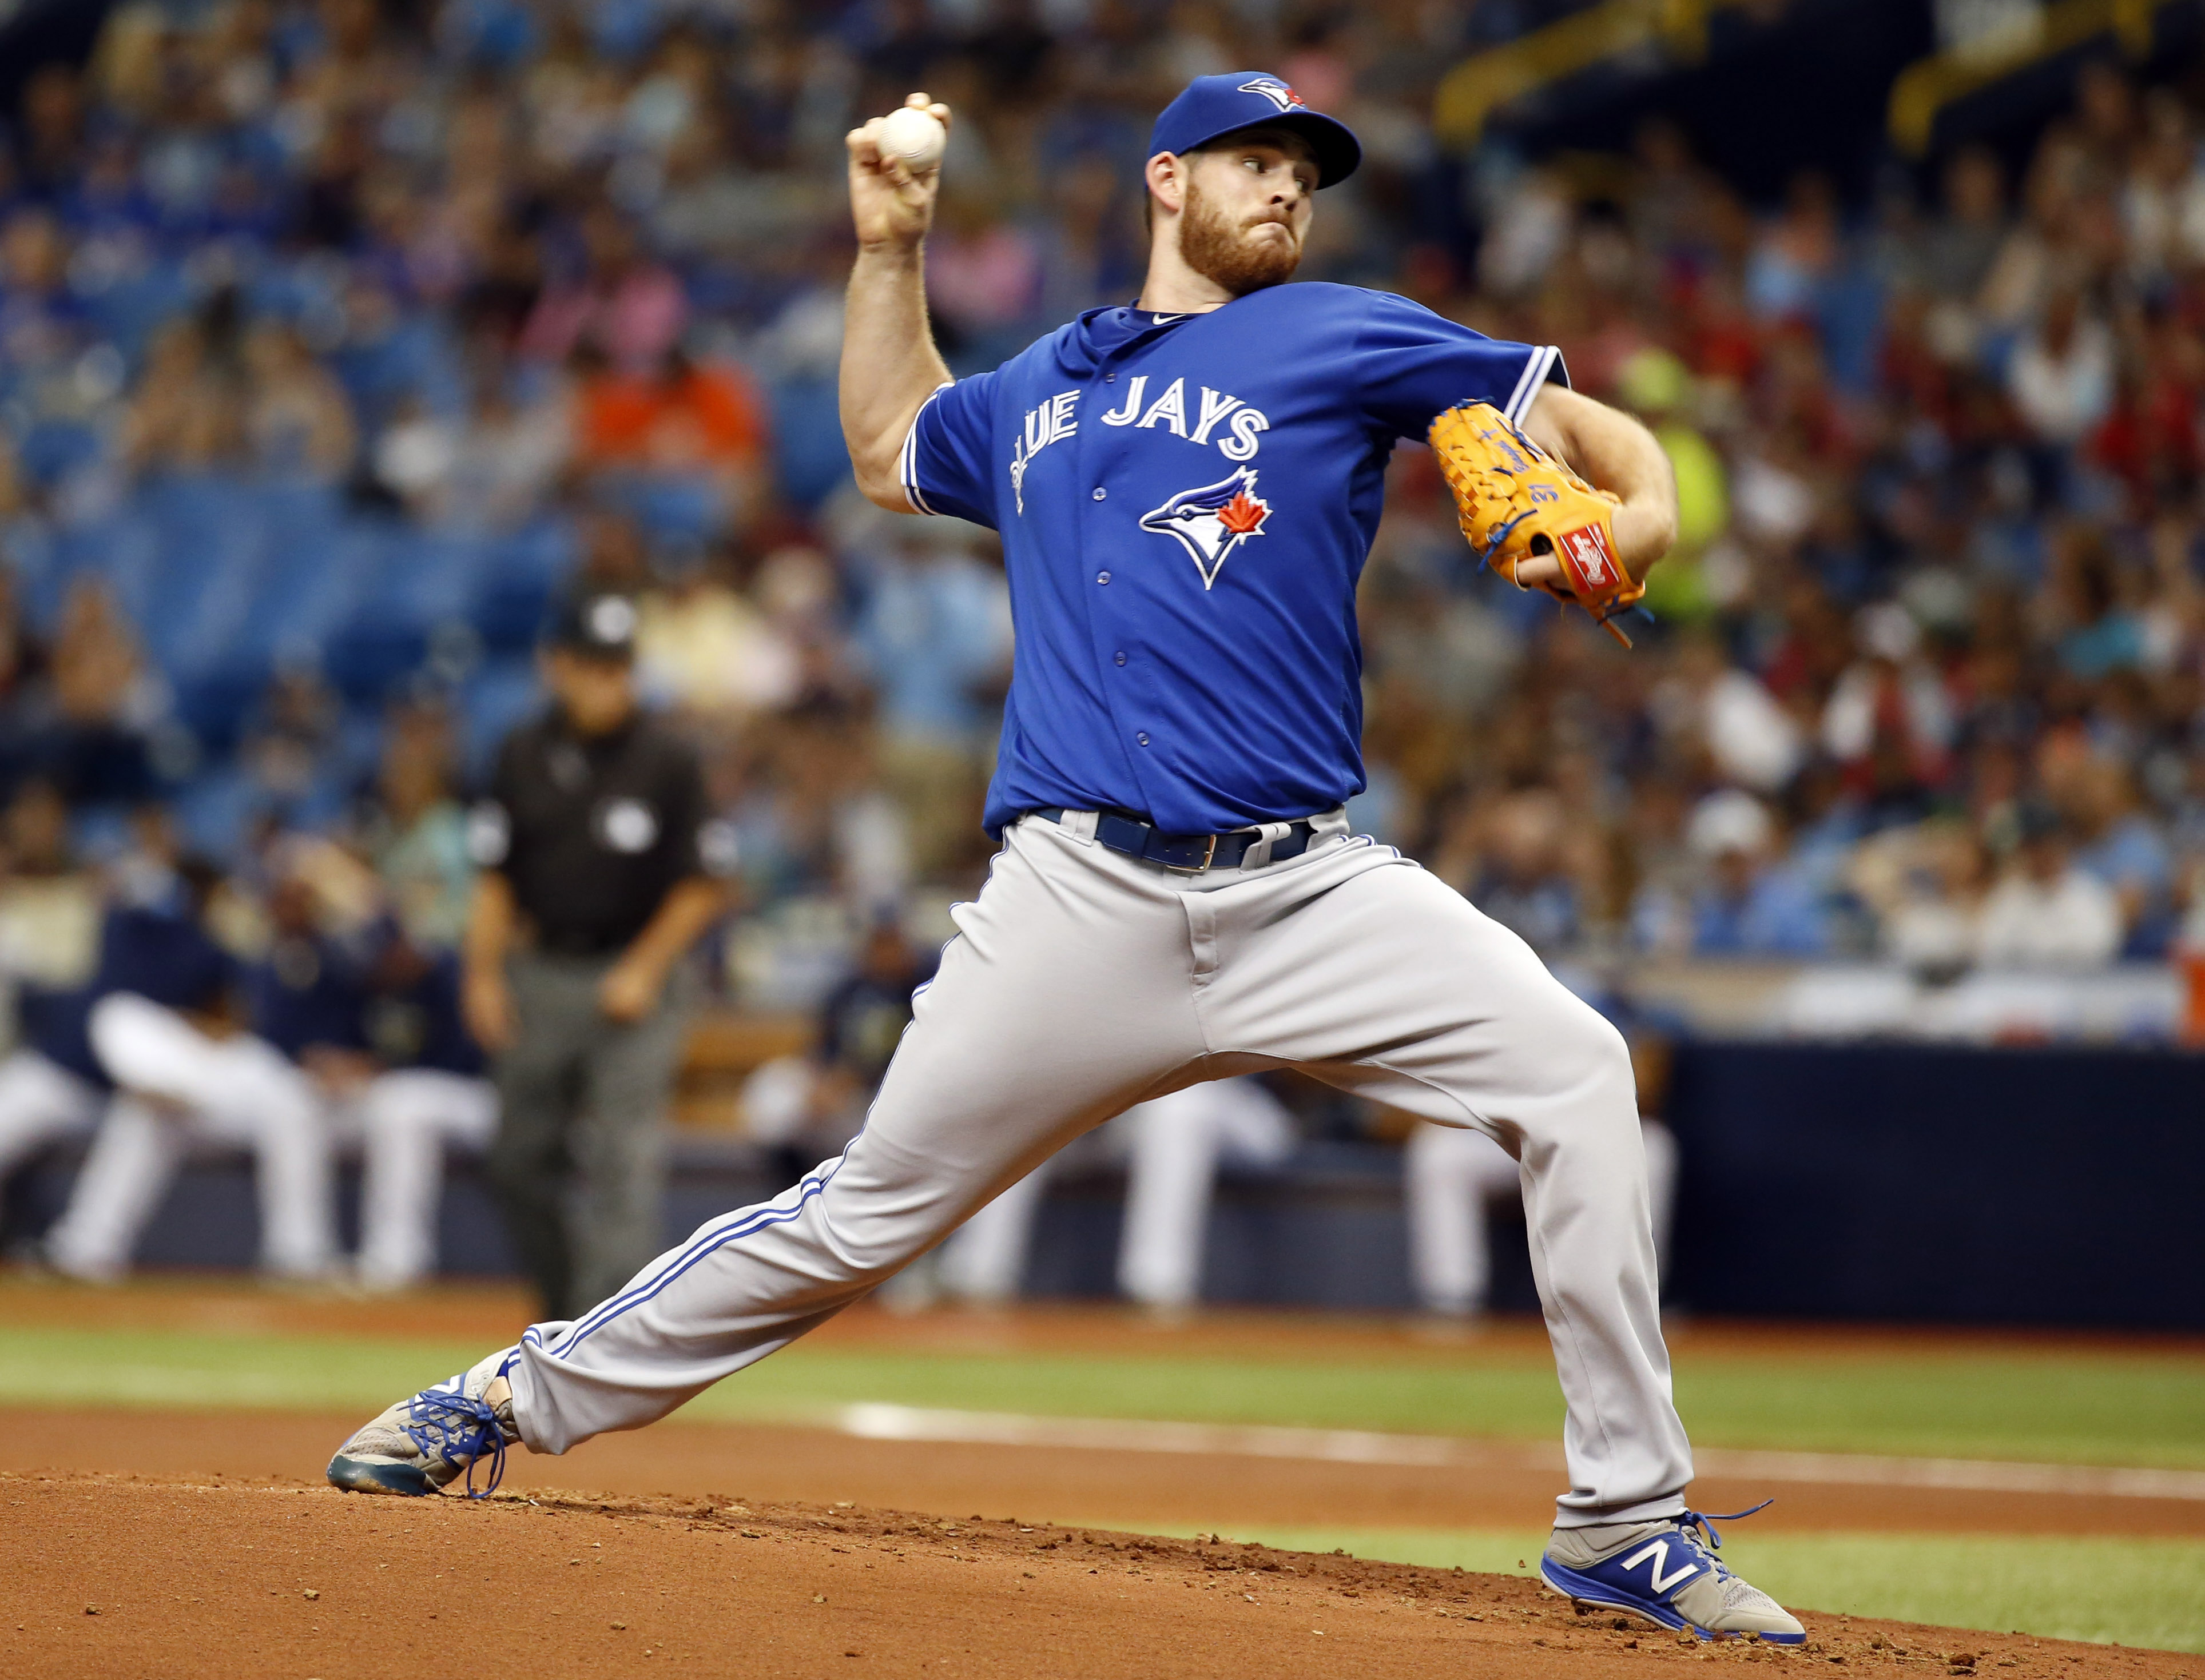 10046955-mlb-toronto-blue-jays-at-tampa-bay-rays